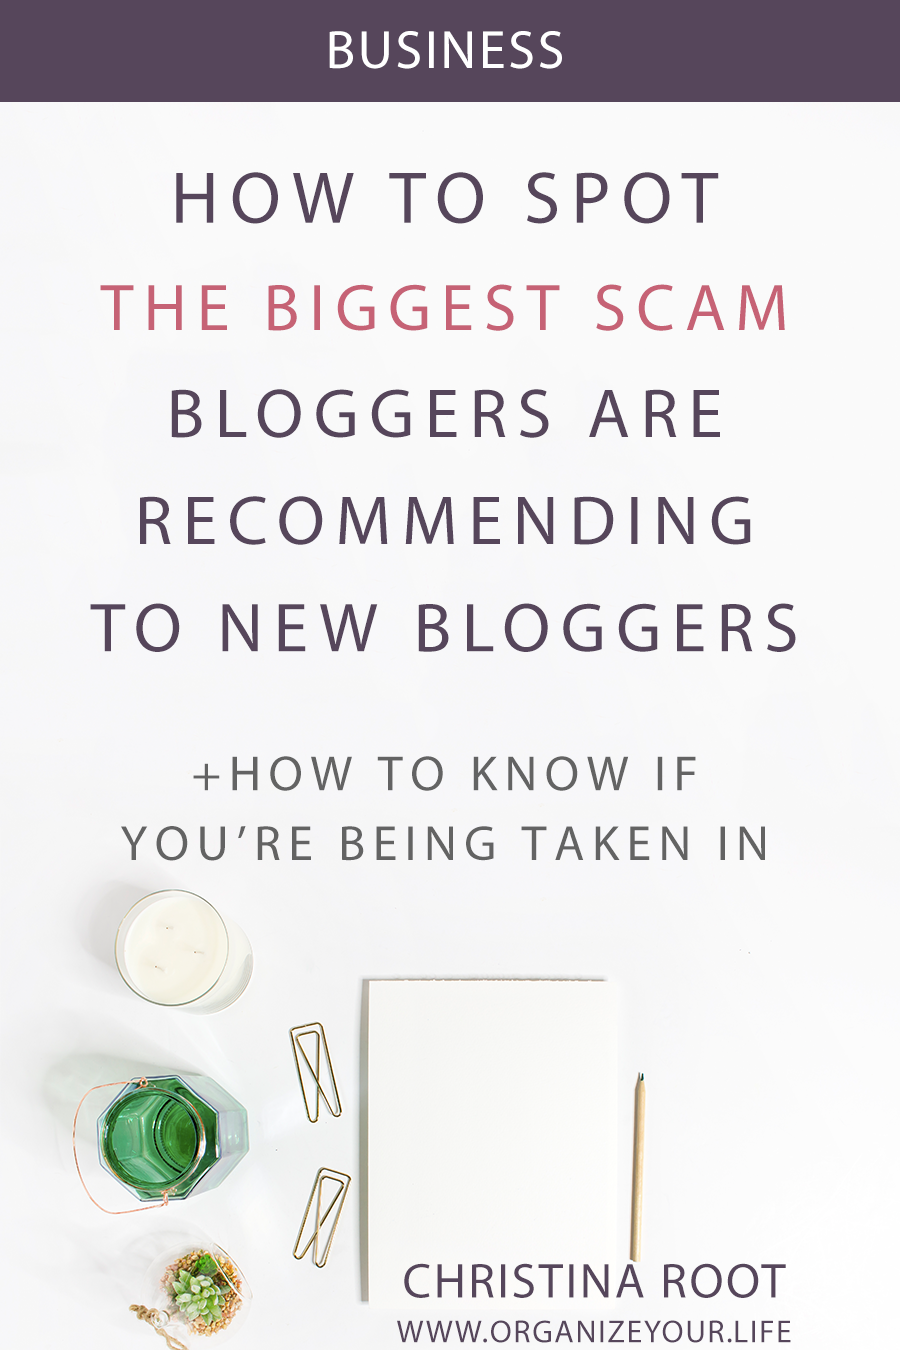 Why You Should Unfollow Bloggers Who Recommend Bluehost